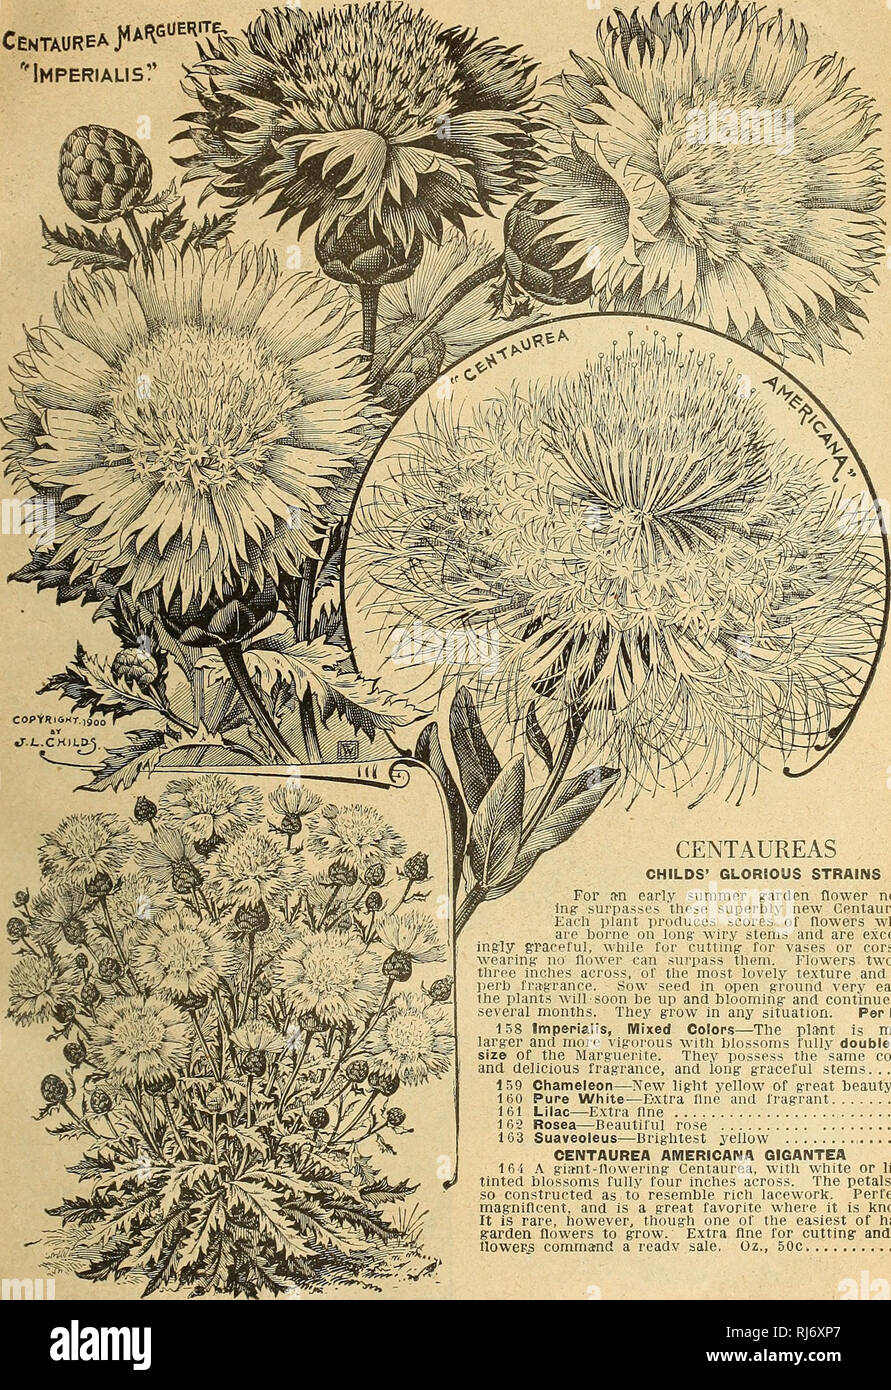 """. Childs' seeds that satisfy bulbs that bloom plants that please berries that bear perennials that pay and roses that rare. Commercial catalogs Seeds; Nurseries (Horticulture) Catalogs; Seeds Catalogs; Flowers Catalogs; Vegetables Catalogs; Fruit Catalogs; John Lewis Childs (Firm); Commercial catalogs; Nurseries (Horticulture); Seeds; Flowers; Vegetables; Fruit. Spring Catalog of Seeds, Bulbs and Plants for 1921 33 CEntaureaJWue^ """"Imperialism. CENTAUREAS CHILDS' GLORIOUS STRAINS For an early summer garden flower noth- ing surpasses these superbly new Centaureas, Each plant produces scores - Stock Image"""